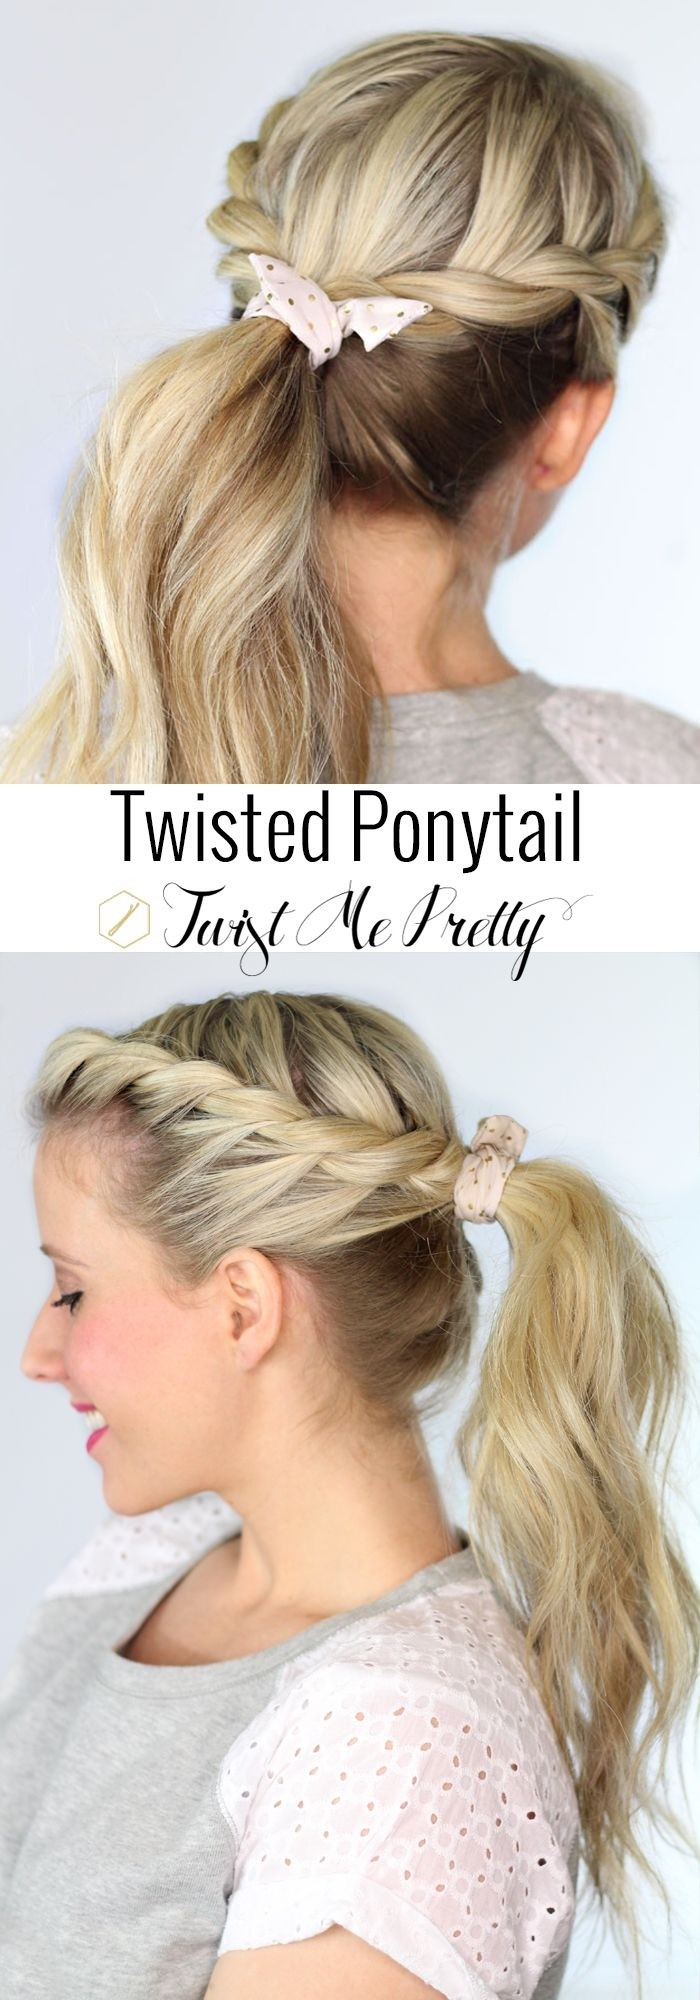 latest ponytail hairstyles for medium length hairs (13)